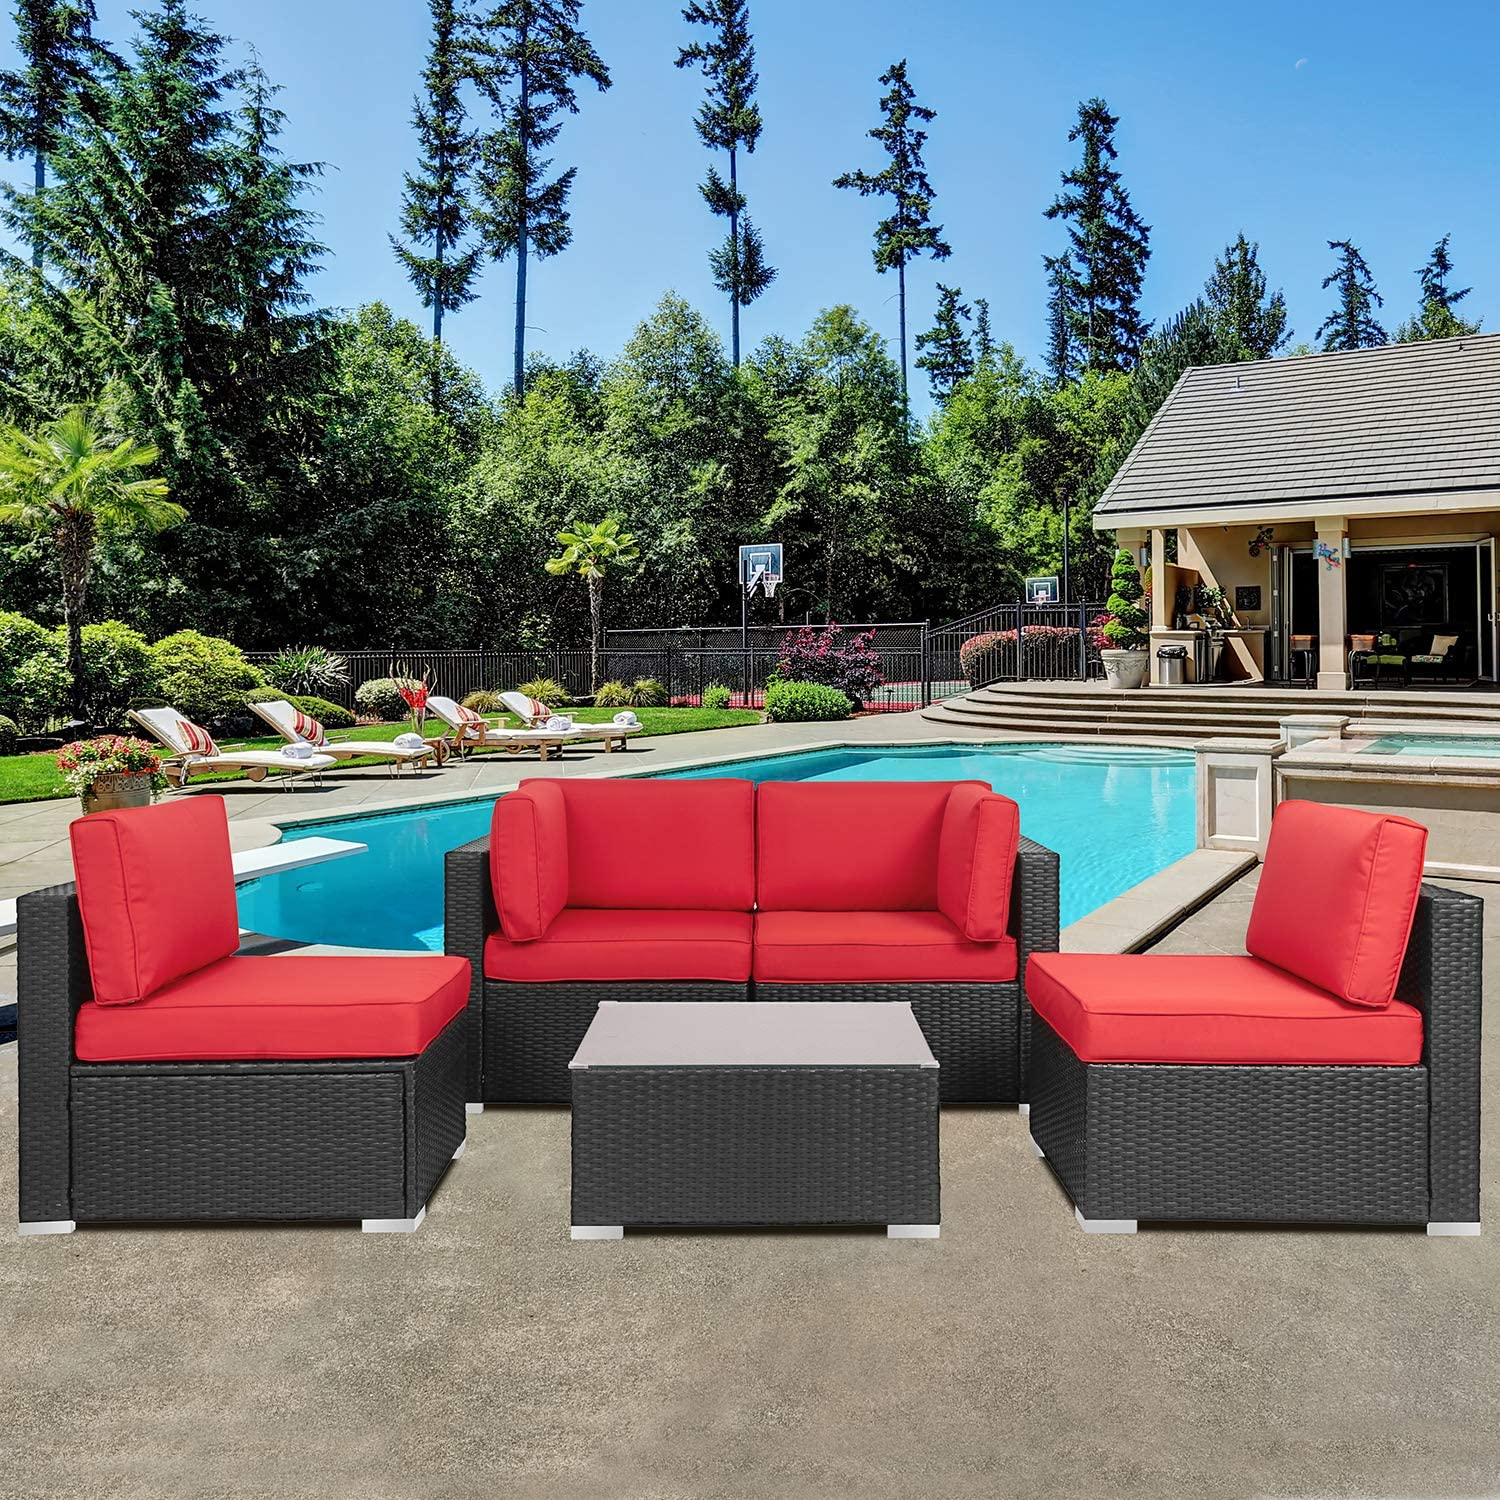 Shintenchi Wicker Rattan Outdoor Patio All Weather Furniture w/Removable Cushions - 5 Pieces Set: Sofa Set & Tea Table [Red]